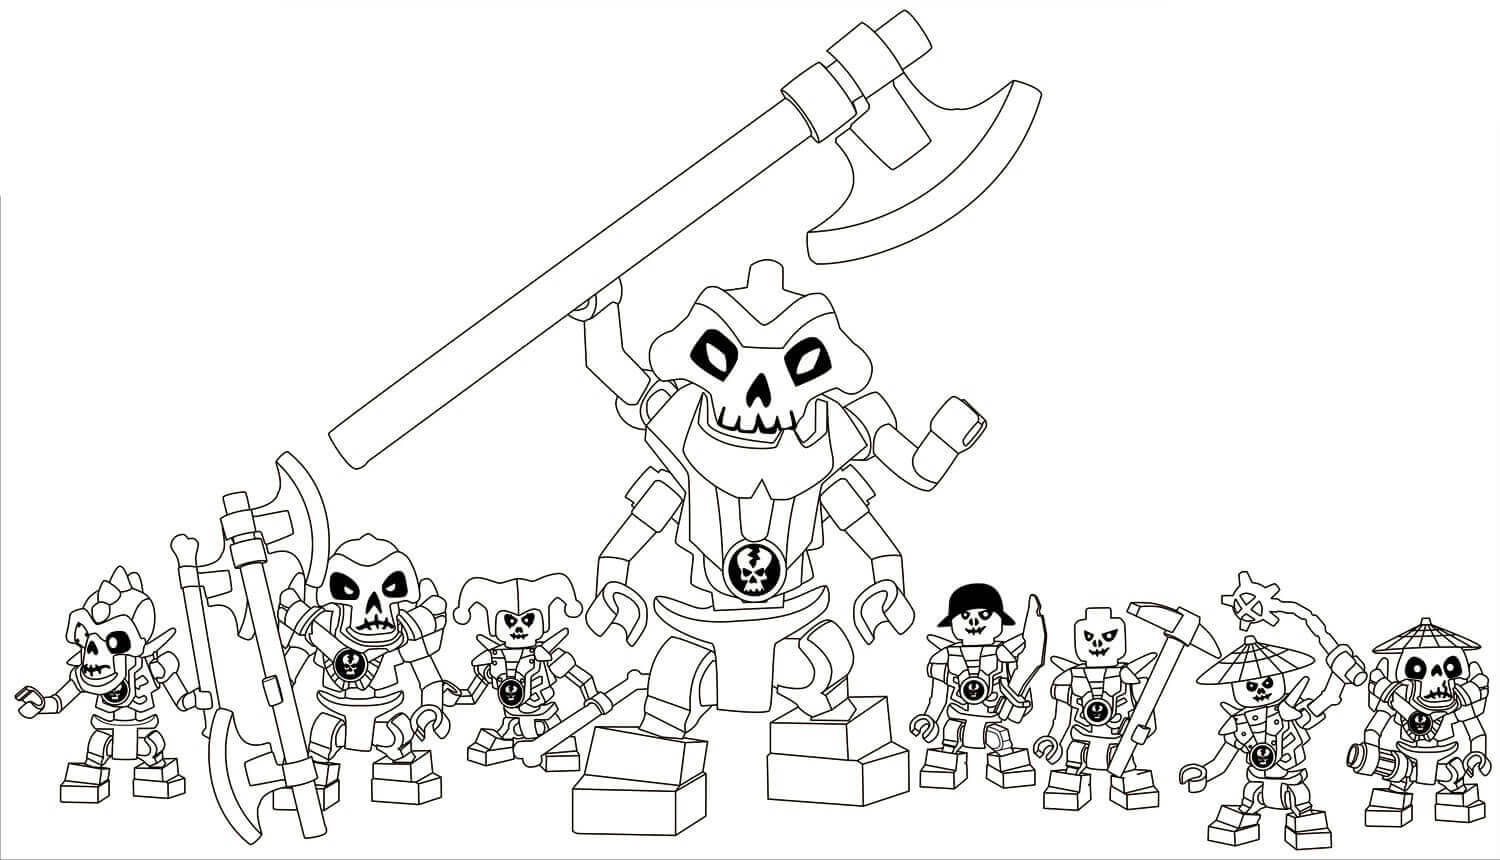 Lego Ninjago Coloring Pages Kruncha With His Team